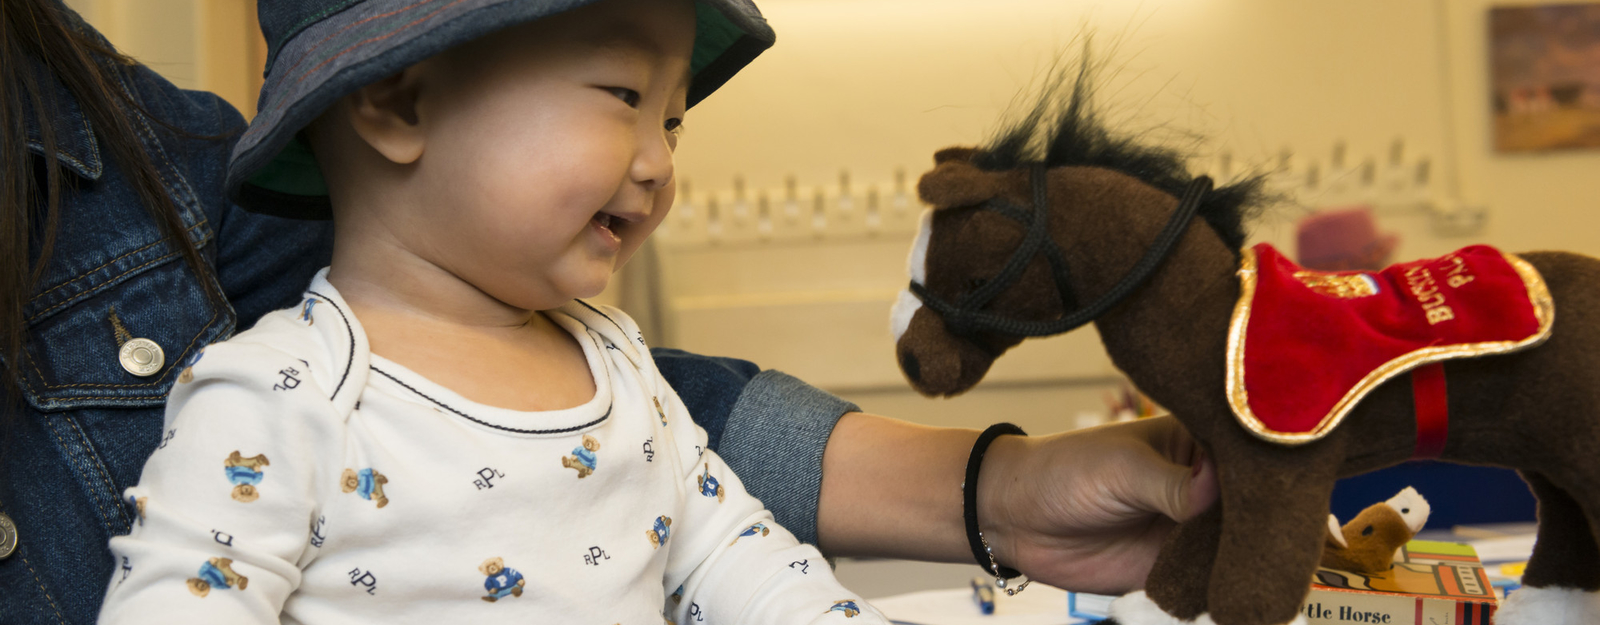 Baby with a cuddly toy horse